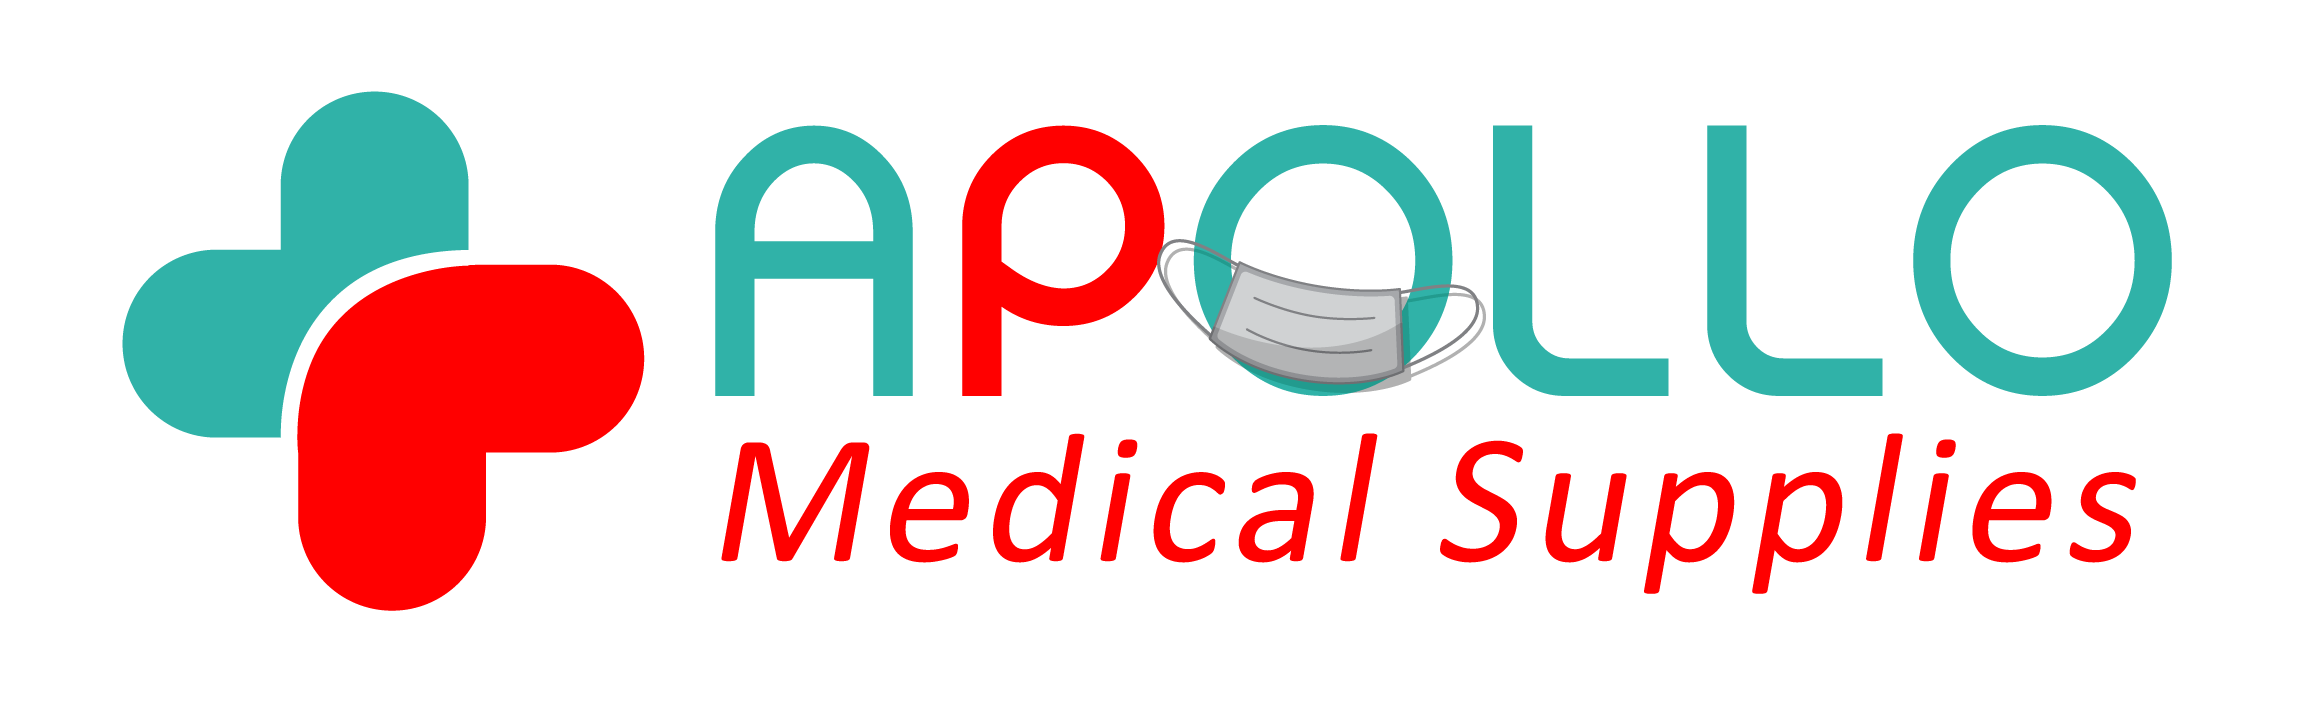 Apollo Medical Supplies